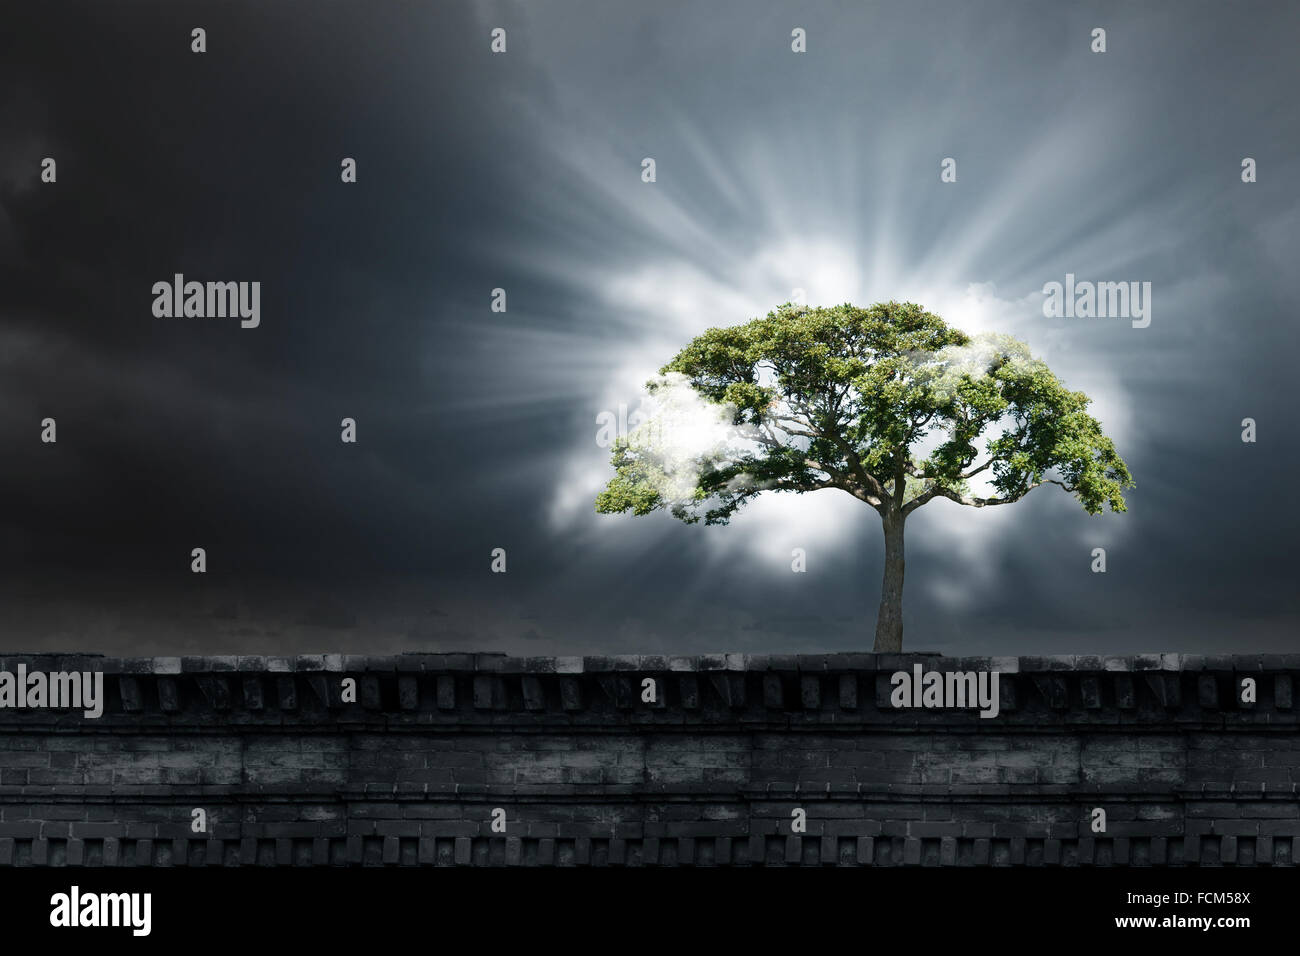 Green Tree As A Symbol Of Environmental Protection Stock Photo